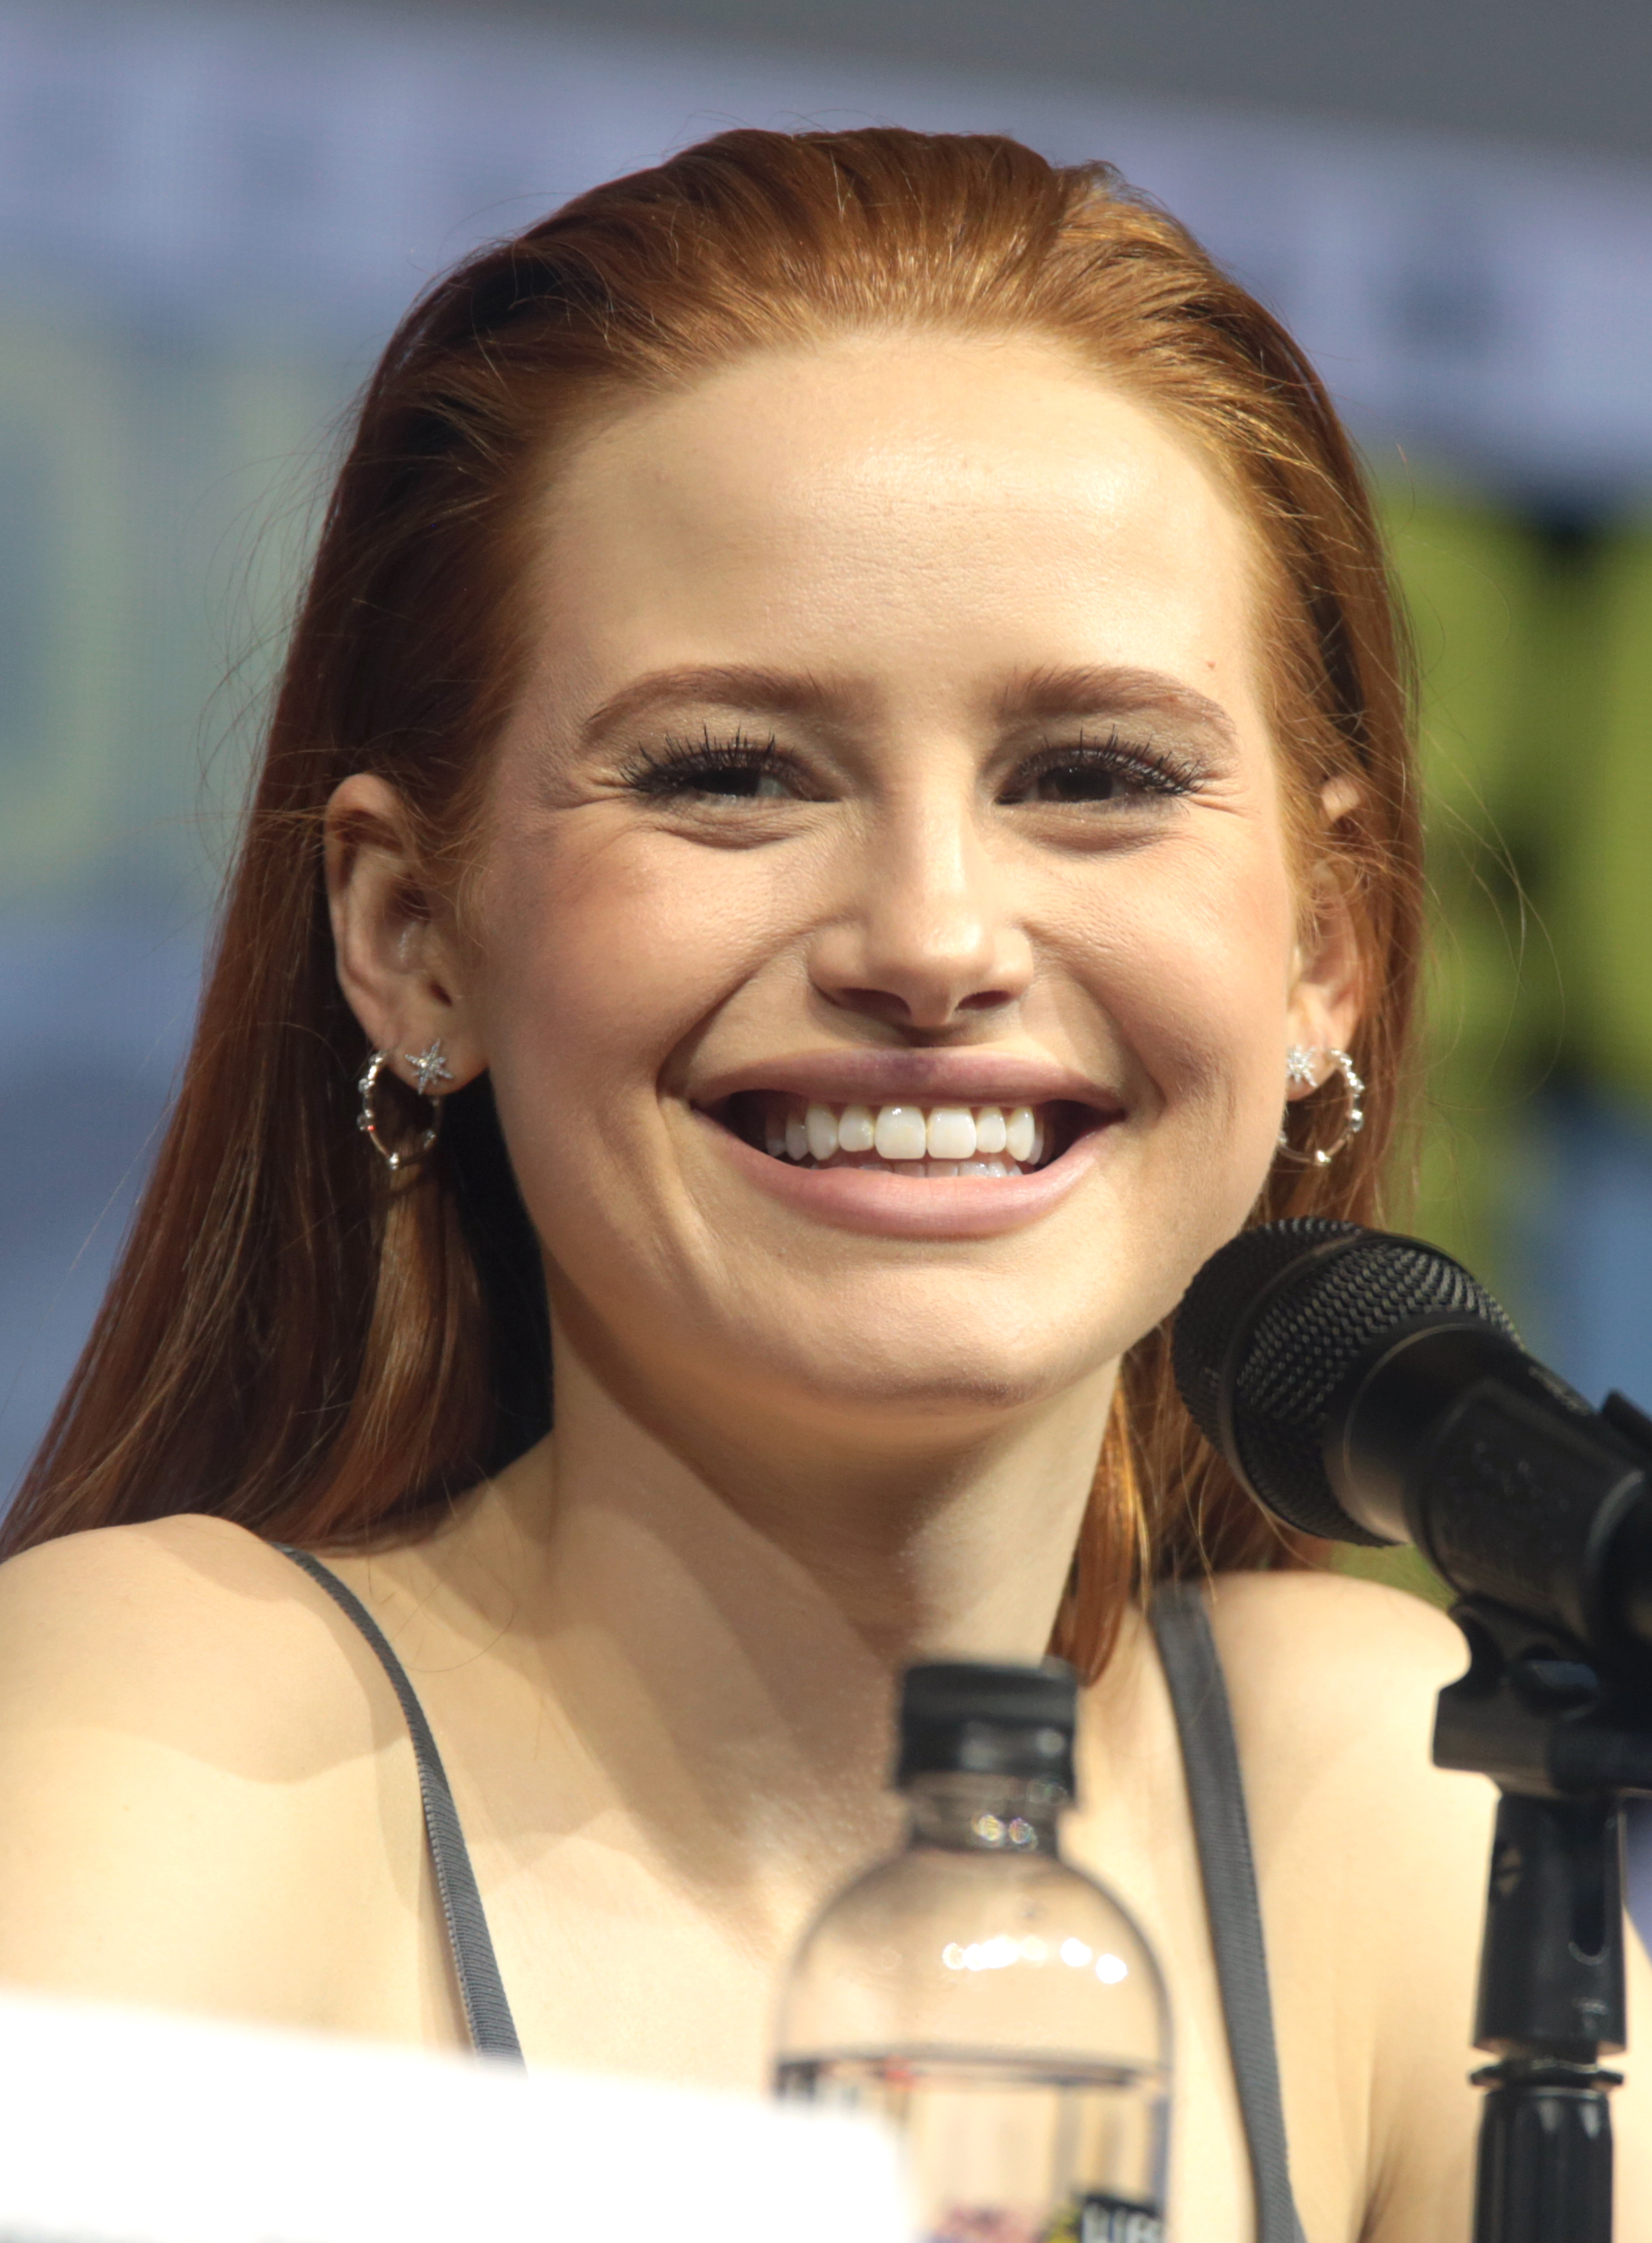 The 24-year old daughter of father (?) and mother(?) Madelaine Petsch in 2018 photo. Madelaine Petsch earned a  million dollar salary - leaving the net worth at  million in 2018